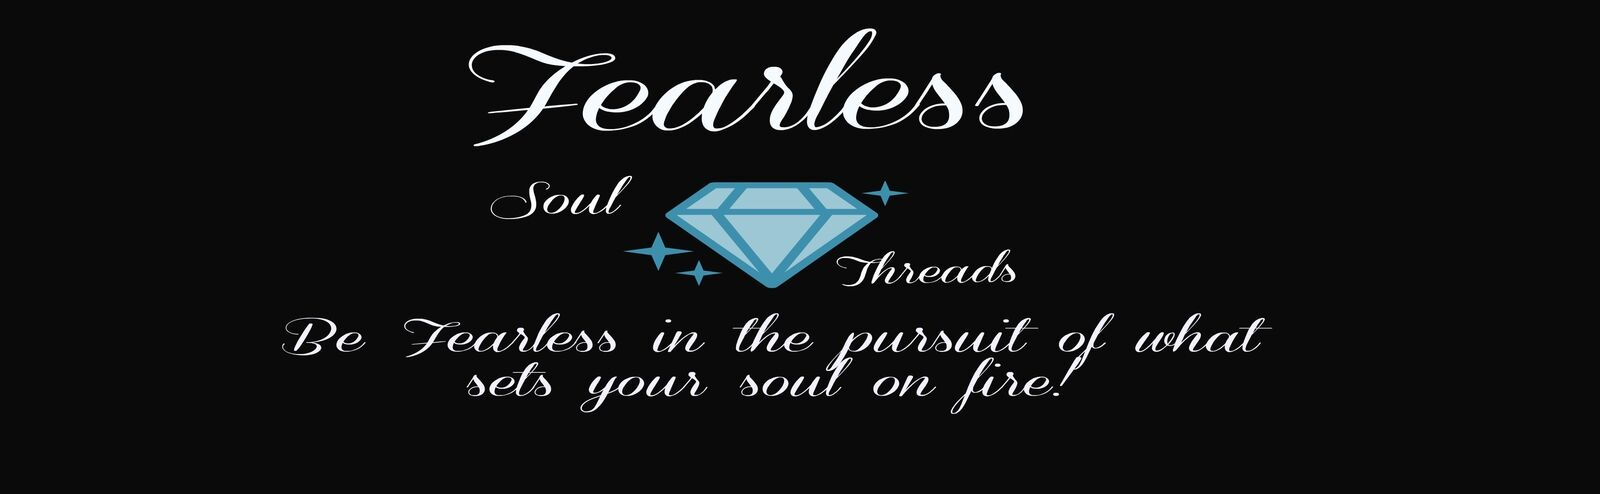 Fearless Soul Threads